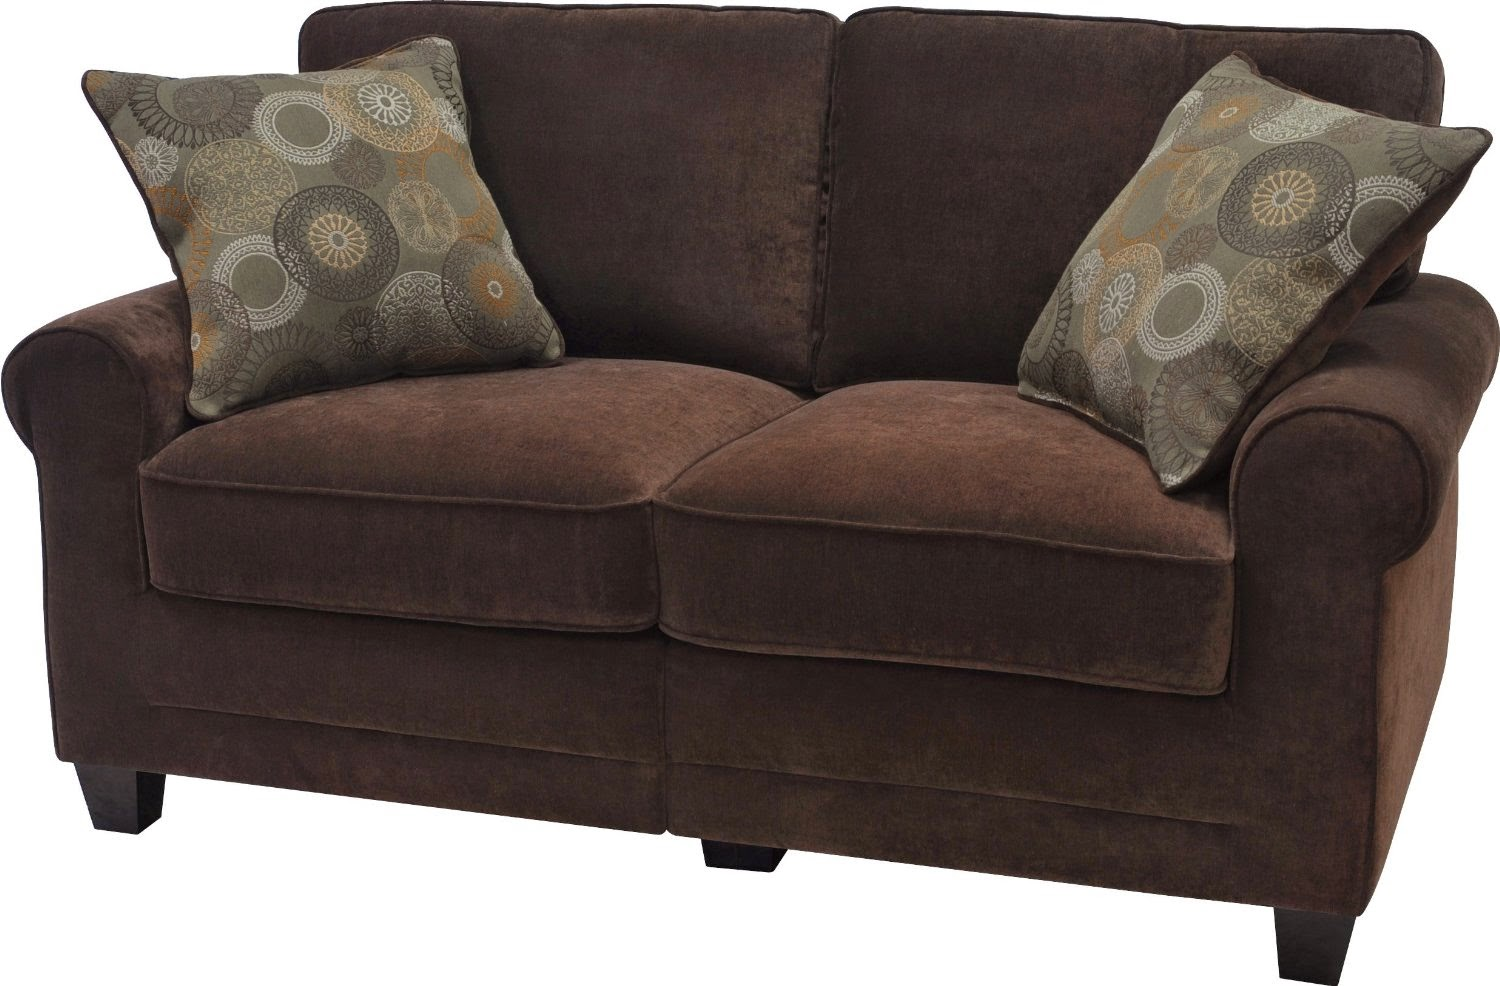 Brown leather couch for Couch and loveseat